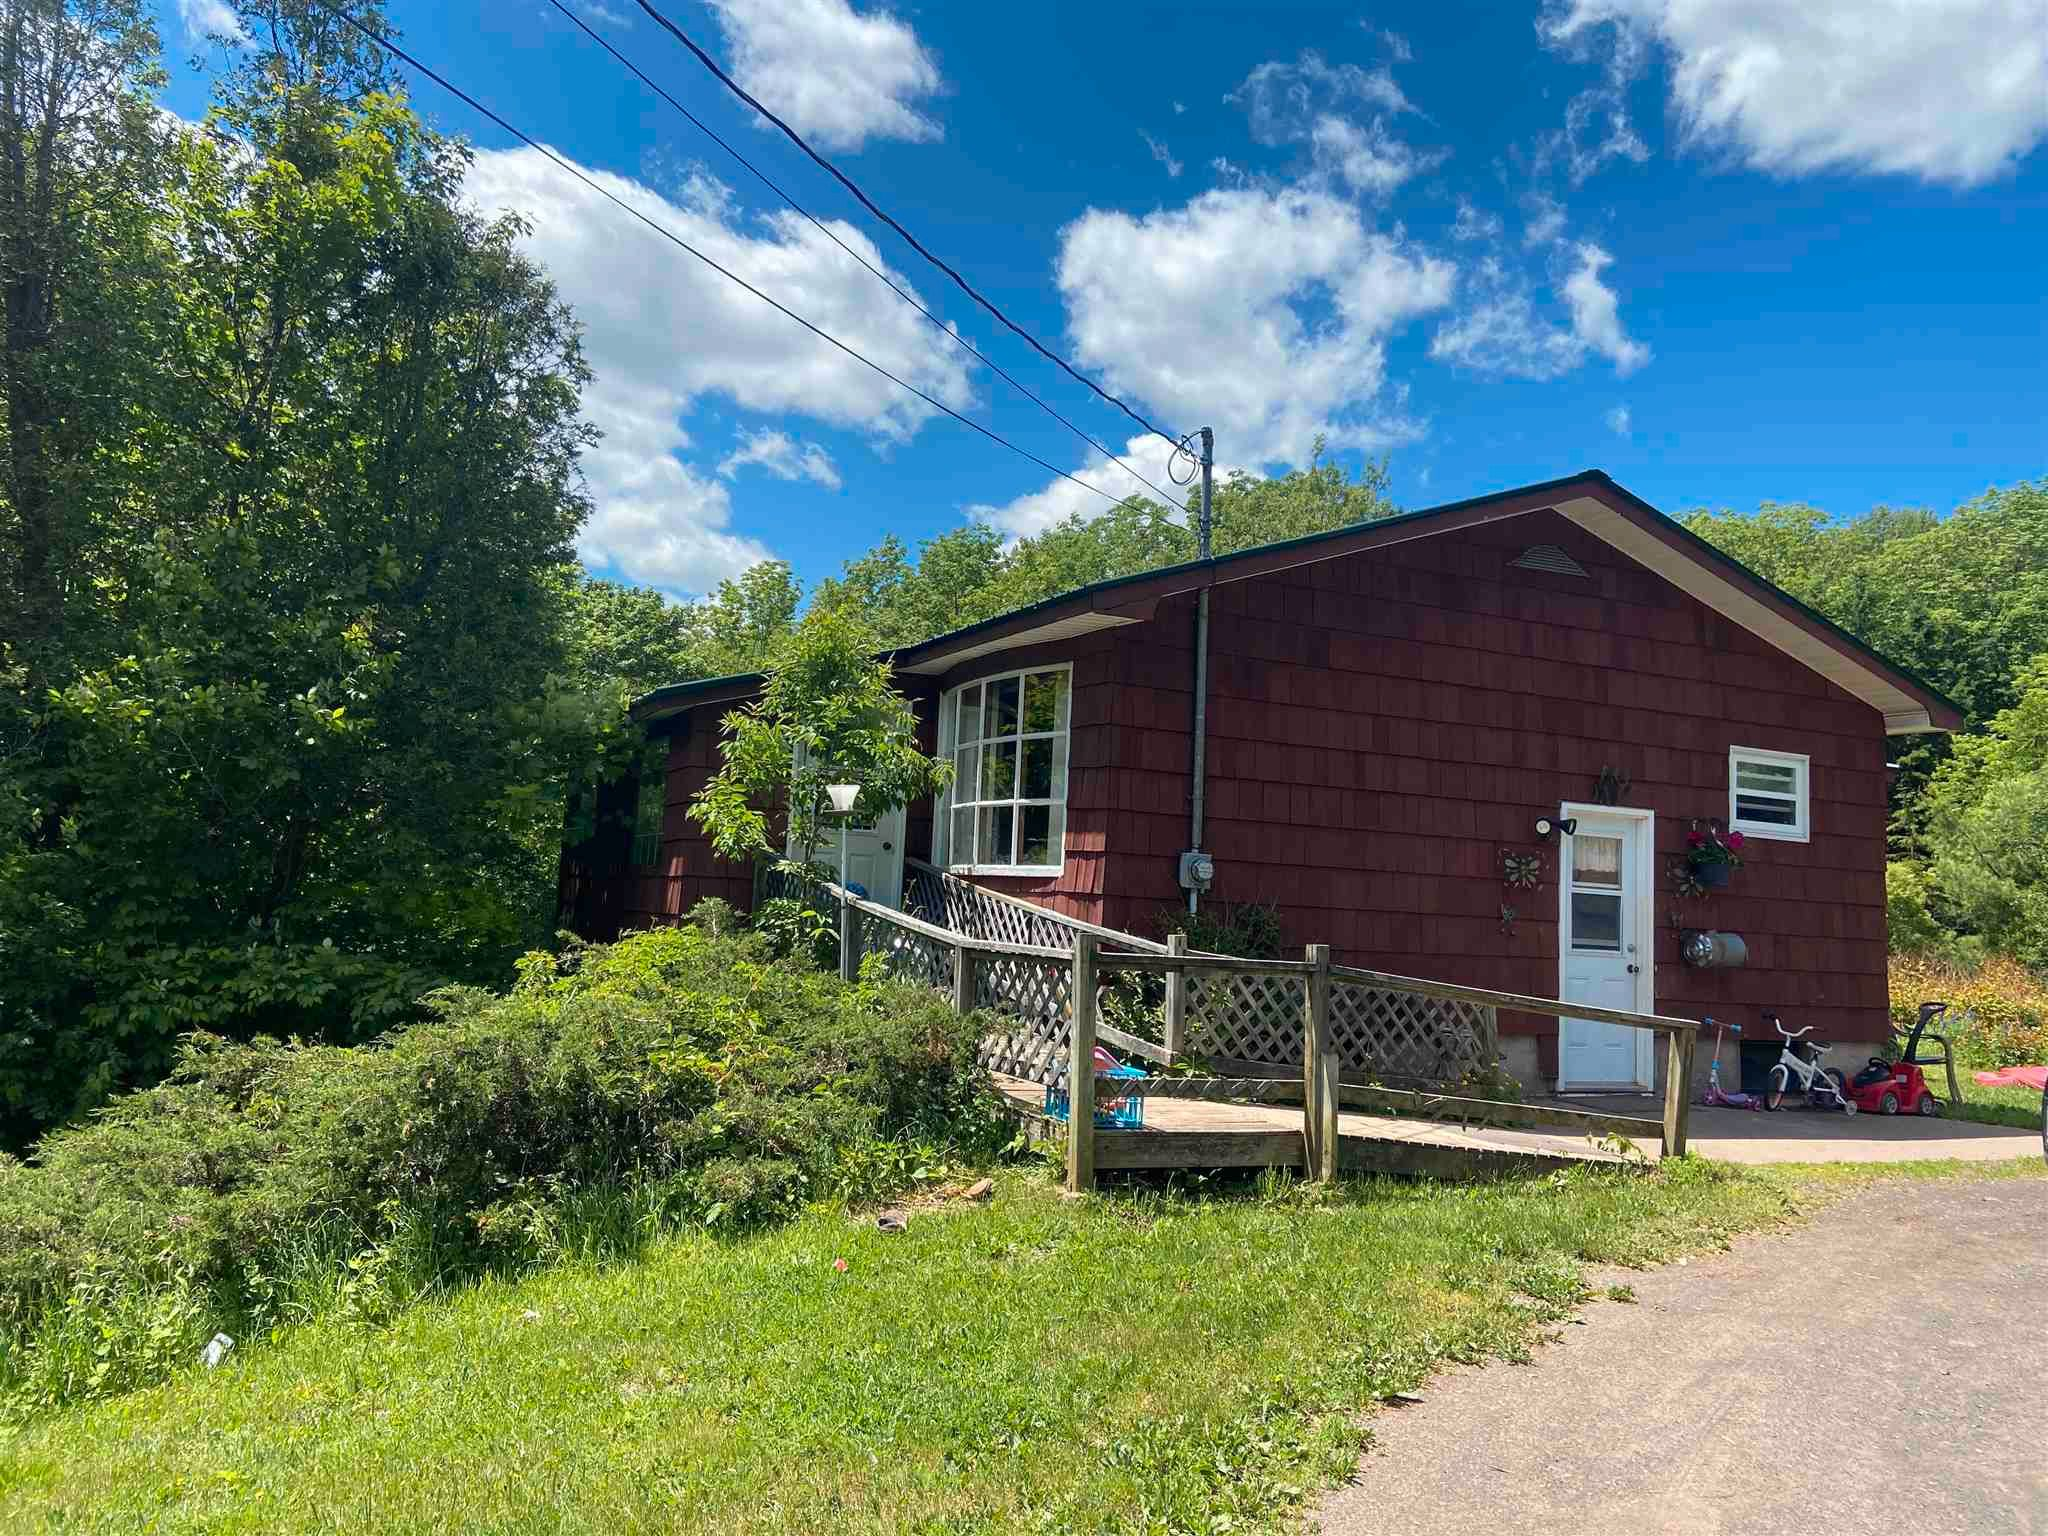 Main Photo: 4667 TRAFALGAR Road in Hopewell: 108-Rural Pictou County Residential for sale (Northern Region)  : MLS®# 202115926